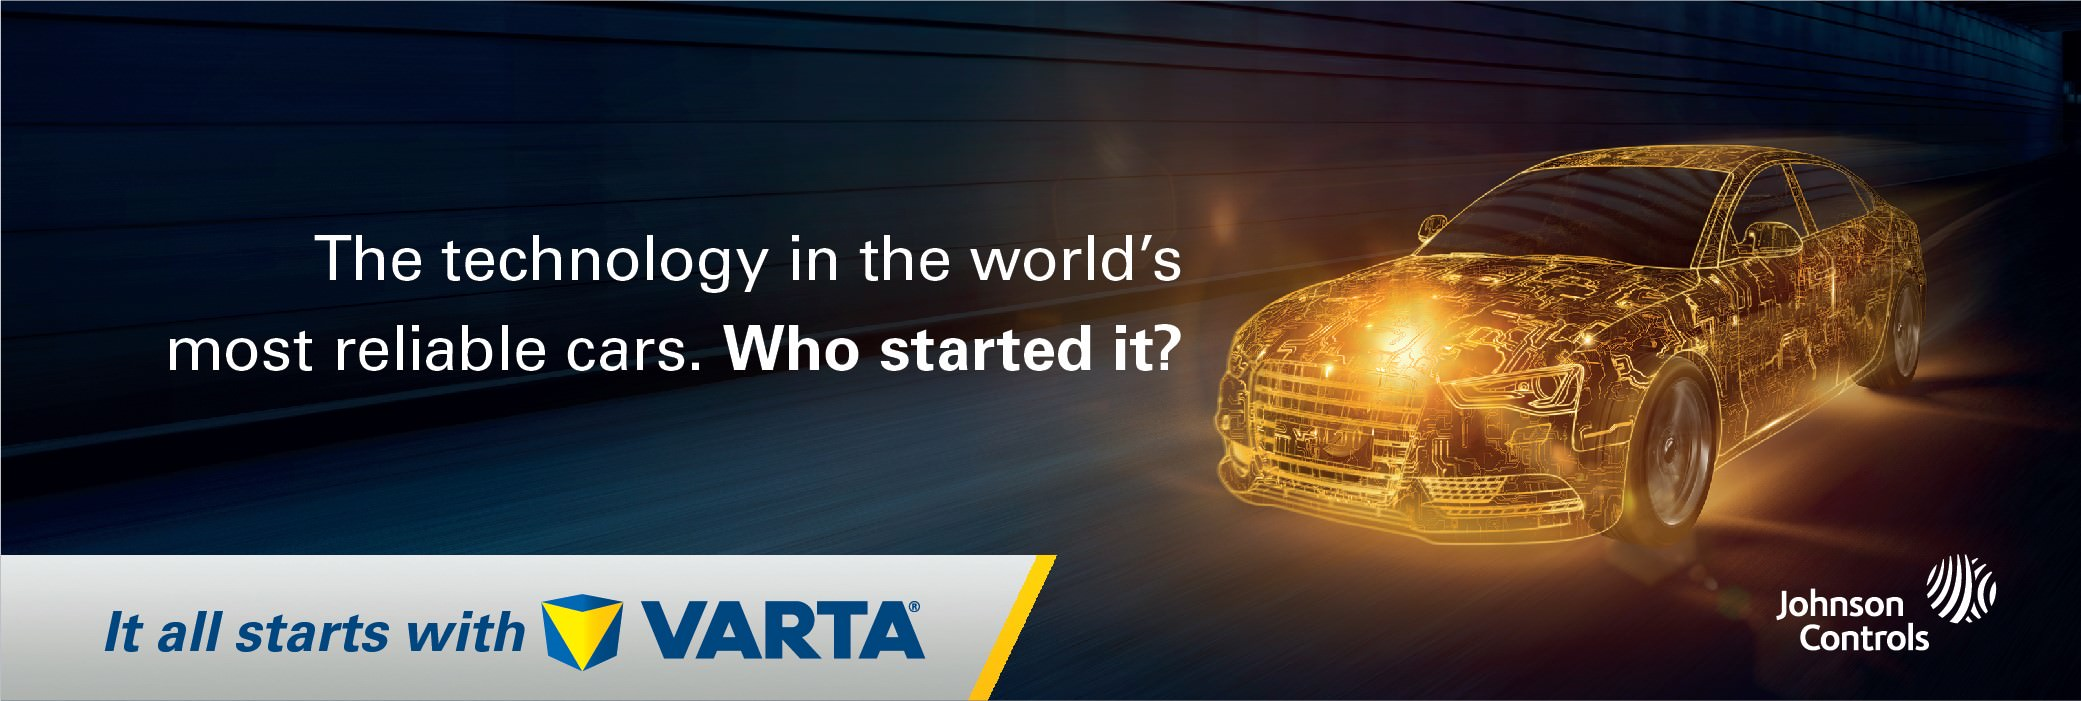 2a64a52cf7d1 The technology in the world's most reliable cars. Who started it?